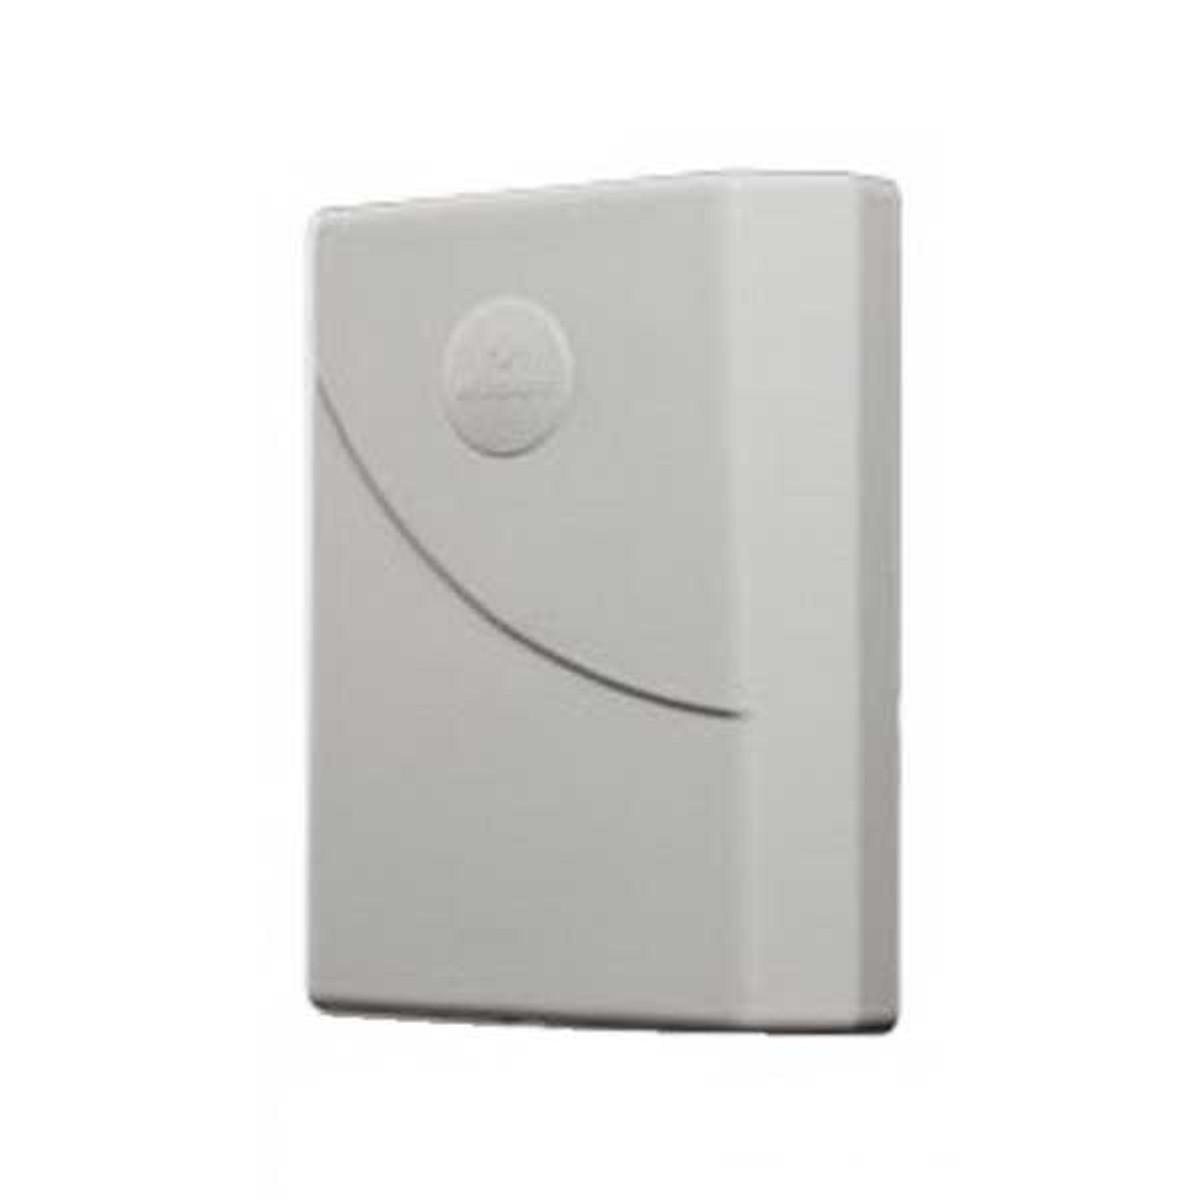 Wilson 304471 Ceiling Mount Panel Antenna 700-2700Mhz 75 ohms Multi Band, alternative angle view